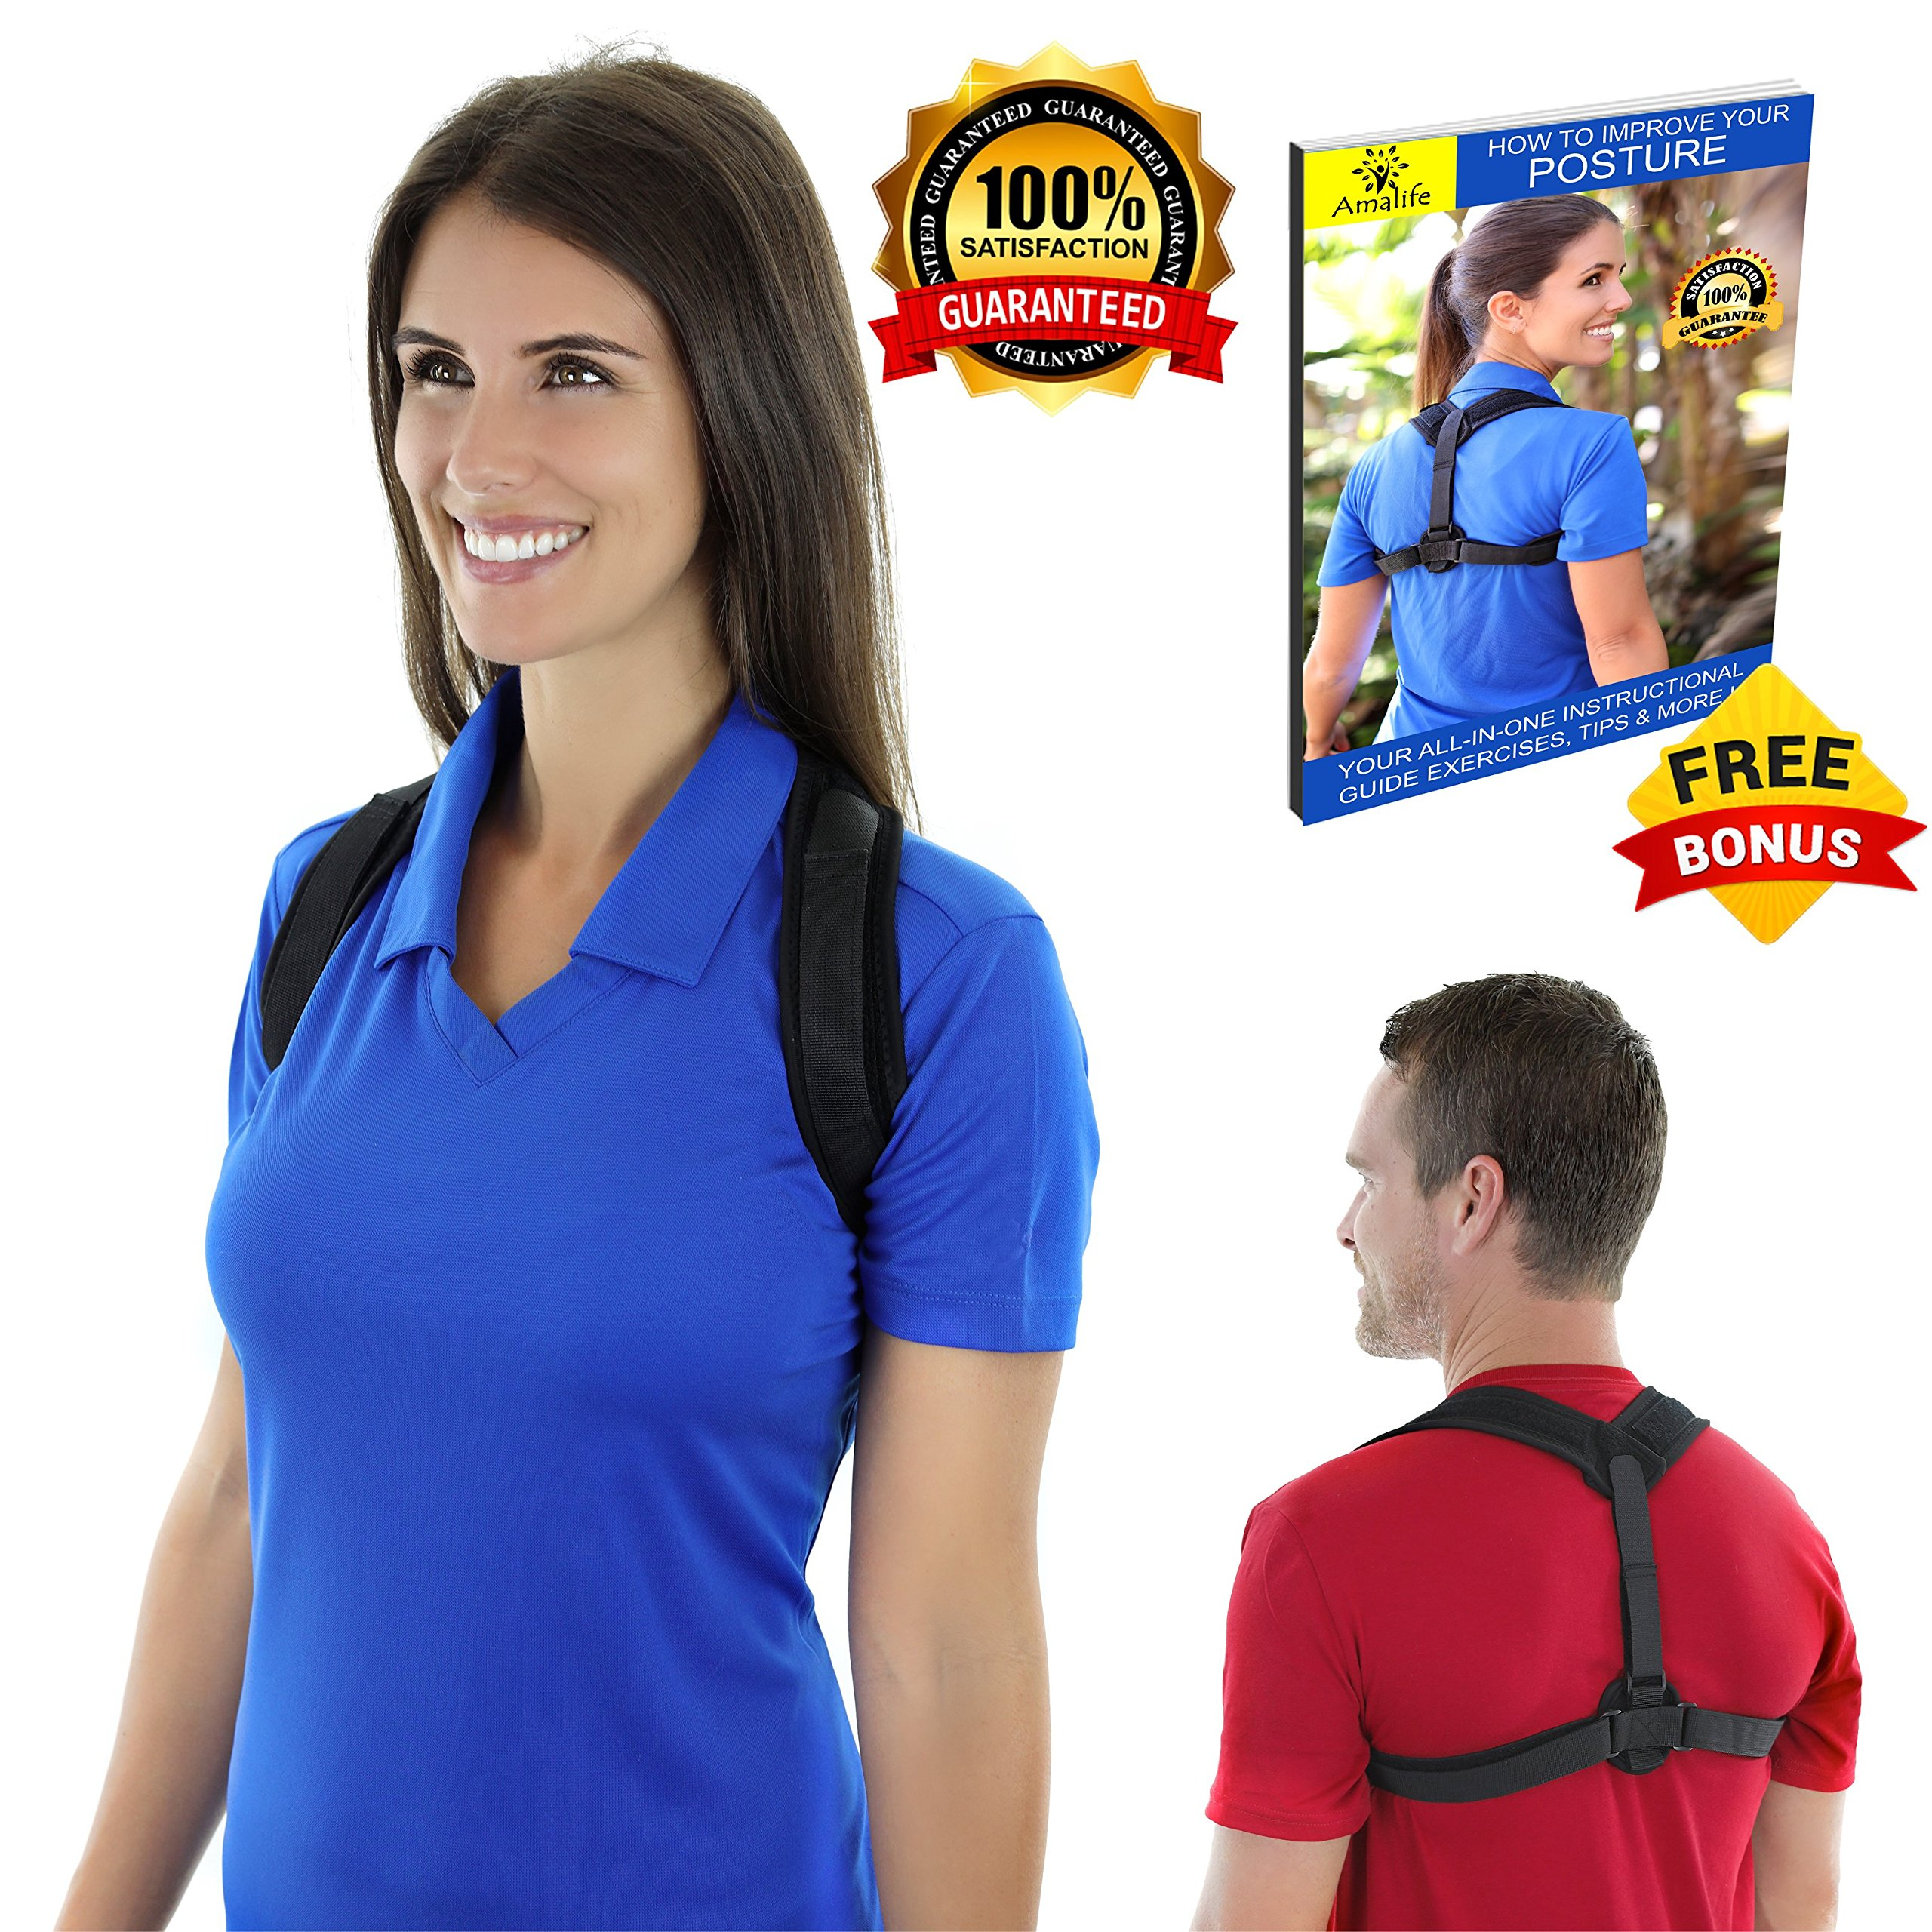 Posture Corrector for Women Men Kids - Comfortable and Effective Posture Brace for Upper Back pain, Slouching, Hunching -Posture Support For Medical Problems & Injury Rehab by Amalife